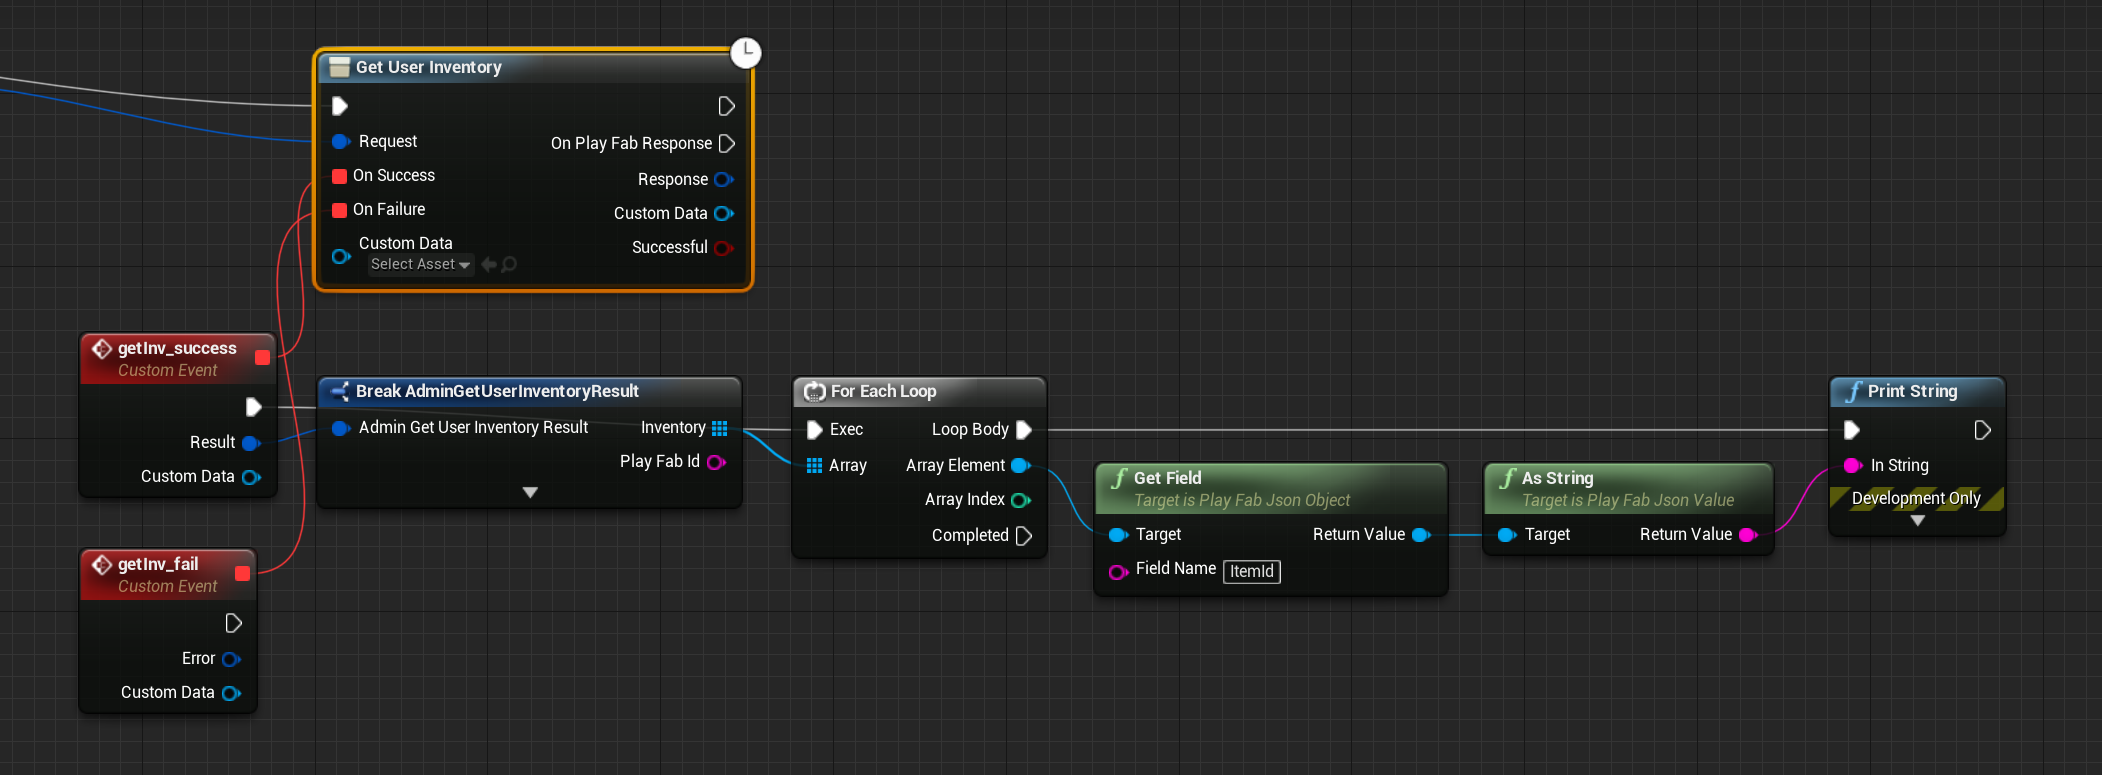 UE4 Blueprints What to do with the results object of an API